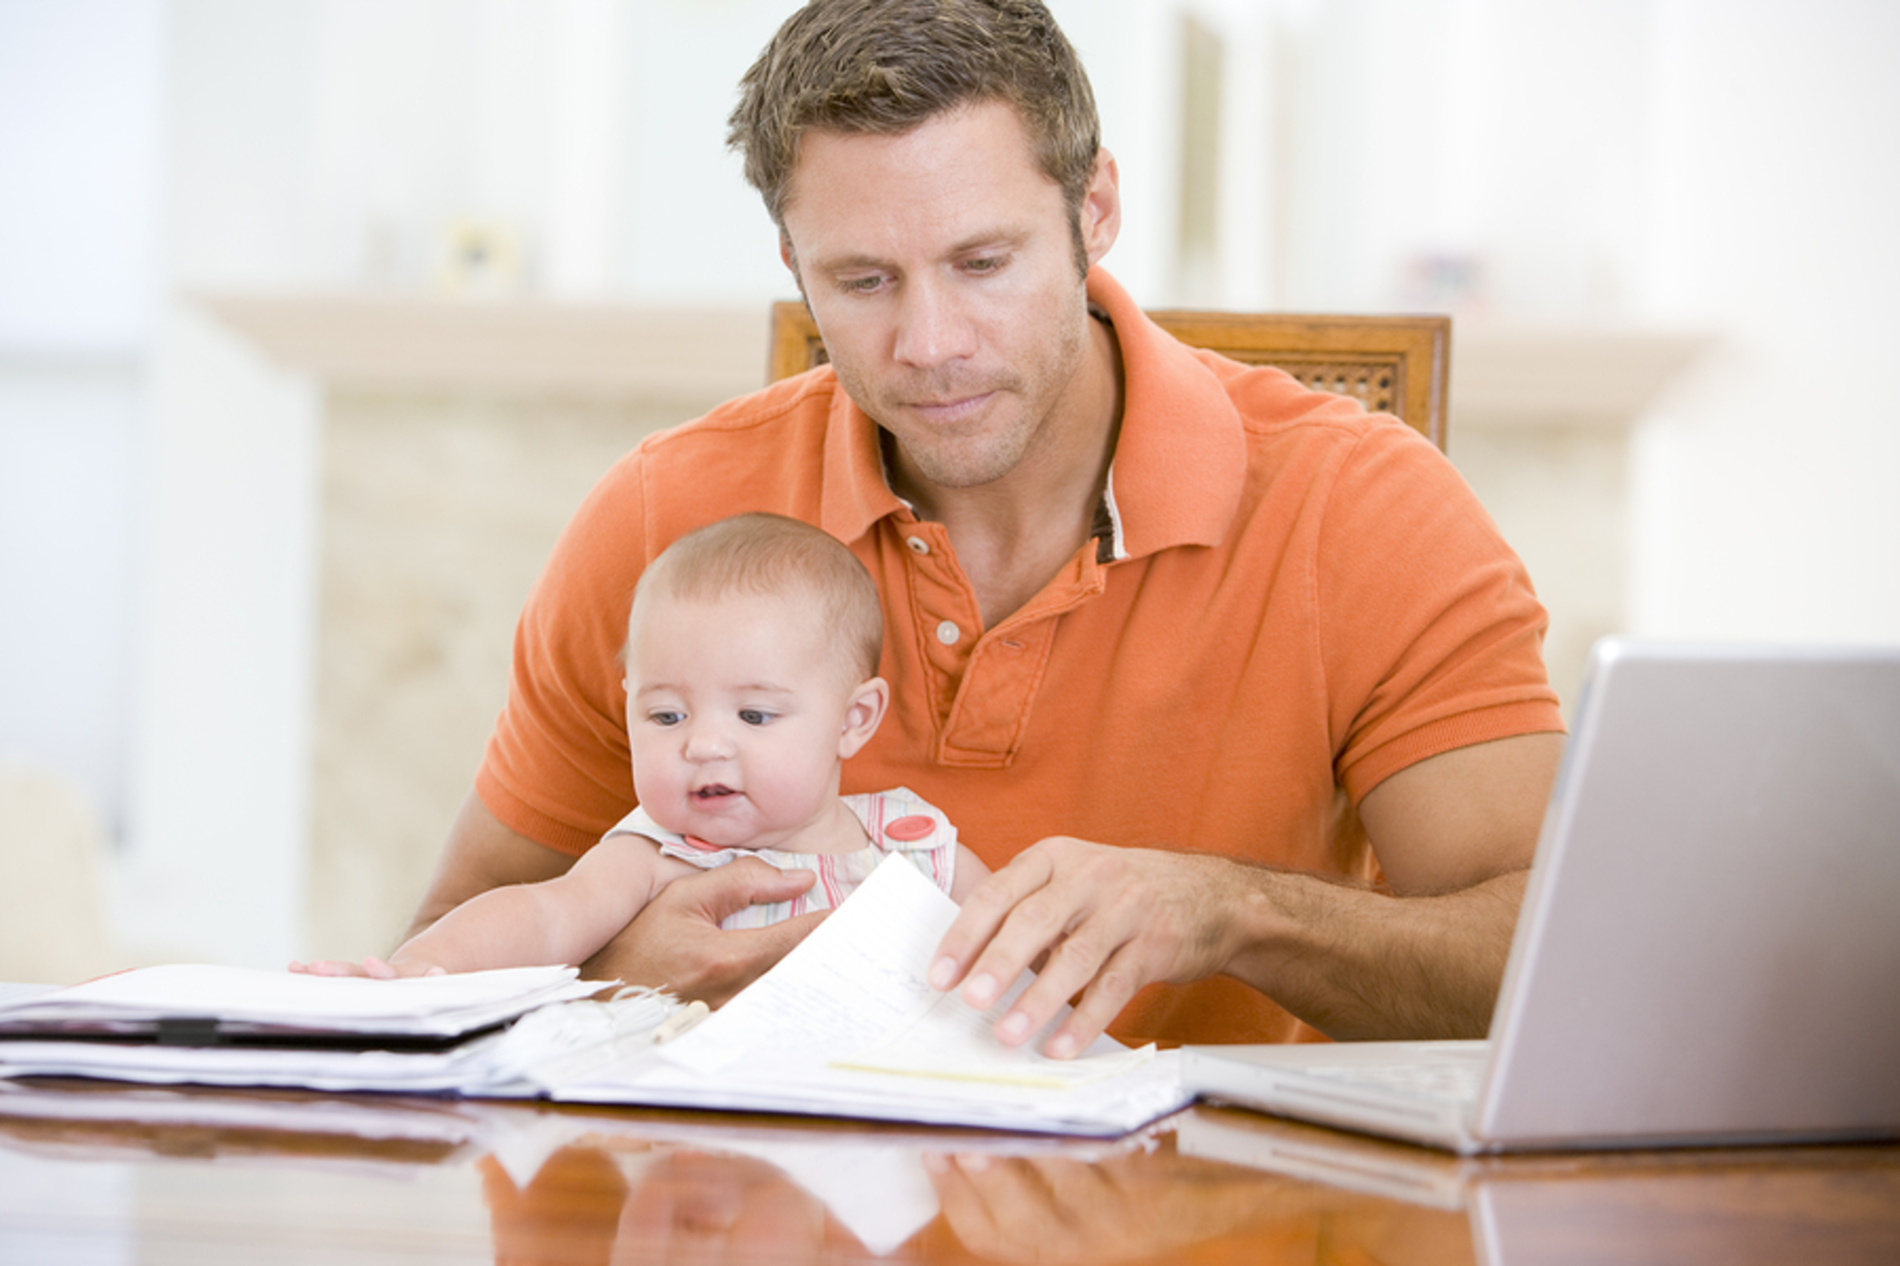 Dad with his baby looking at paperwork at a desk.